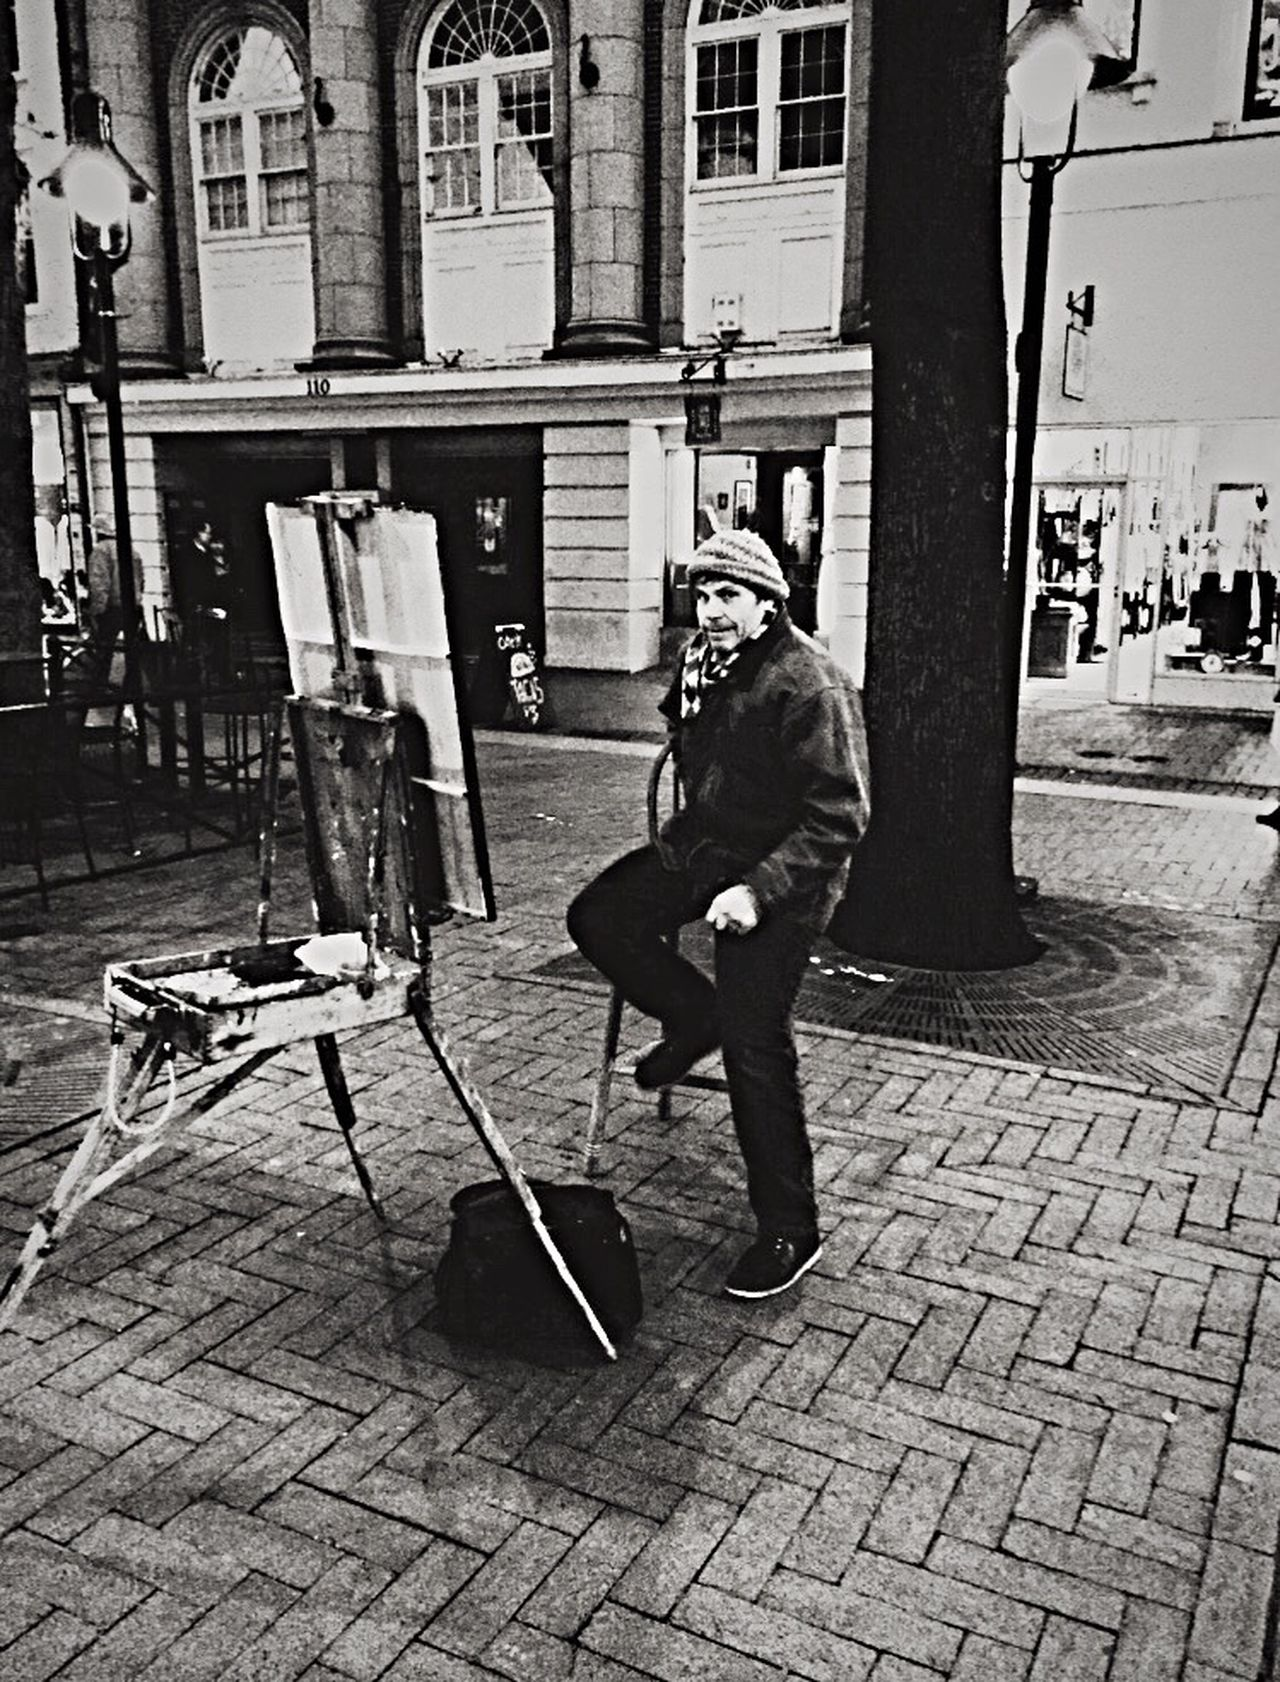 Downtown Walking Mall C'ville, VA One Person Street Art Blackandwhitephoto Street Vendor Streetphotography Charlottesville Paint Painting Mall Real People Architecture Oil Painting